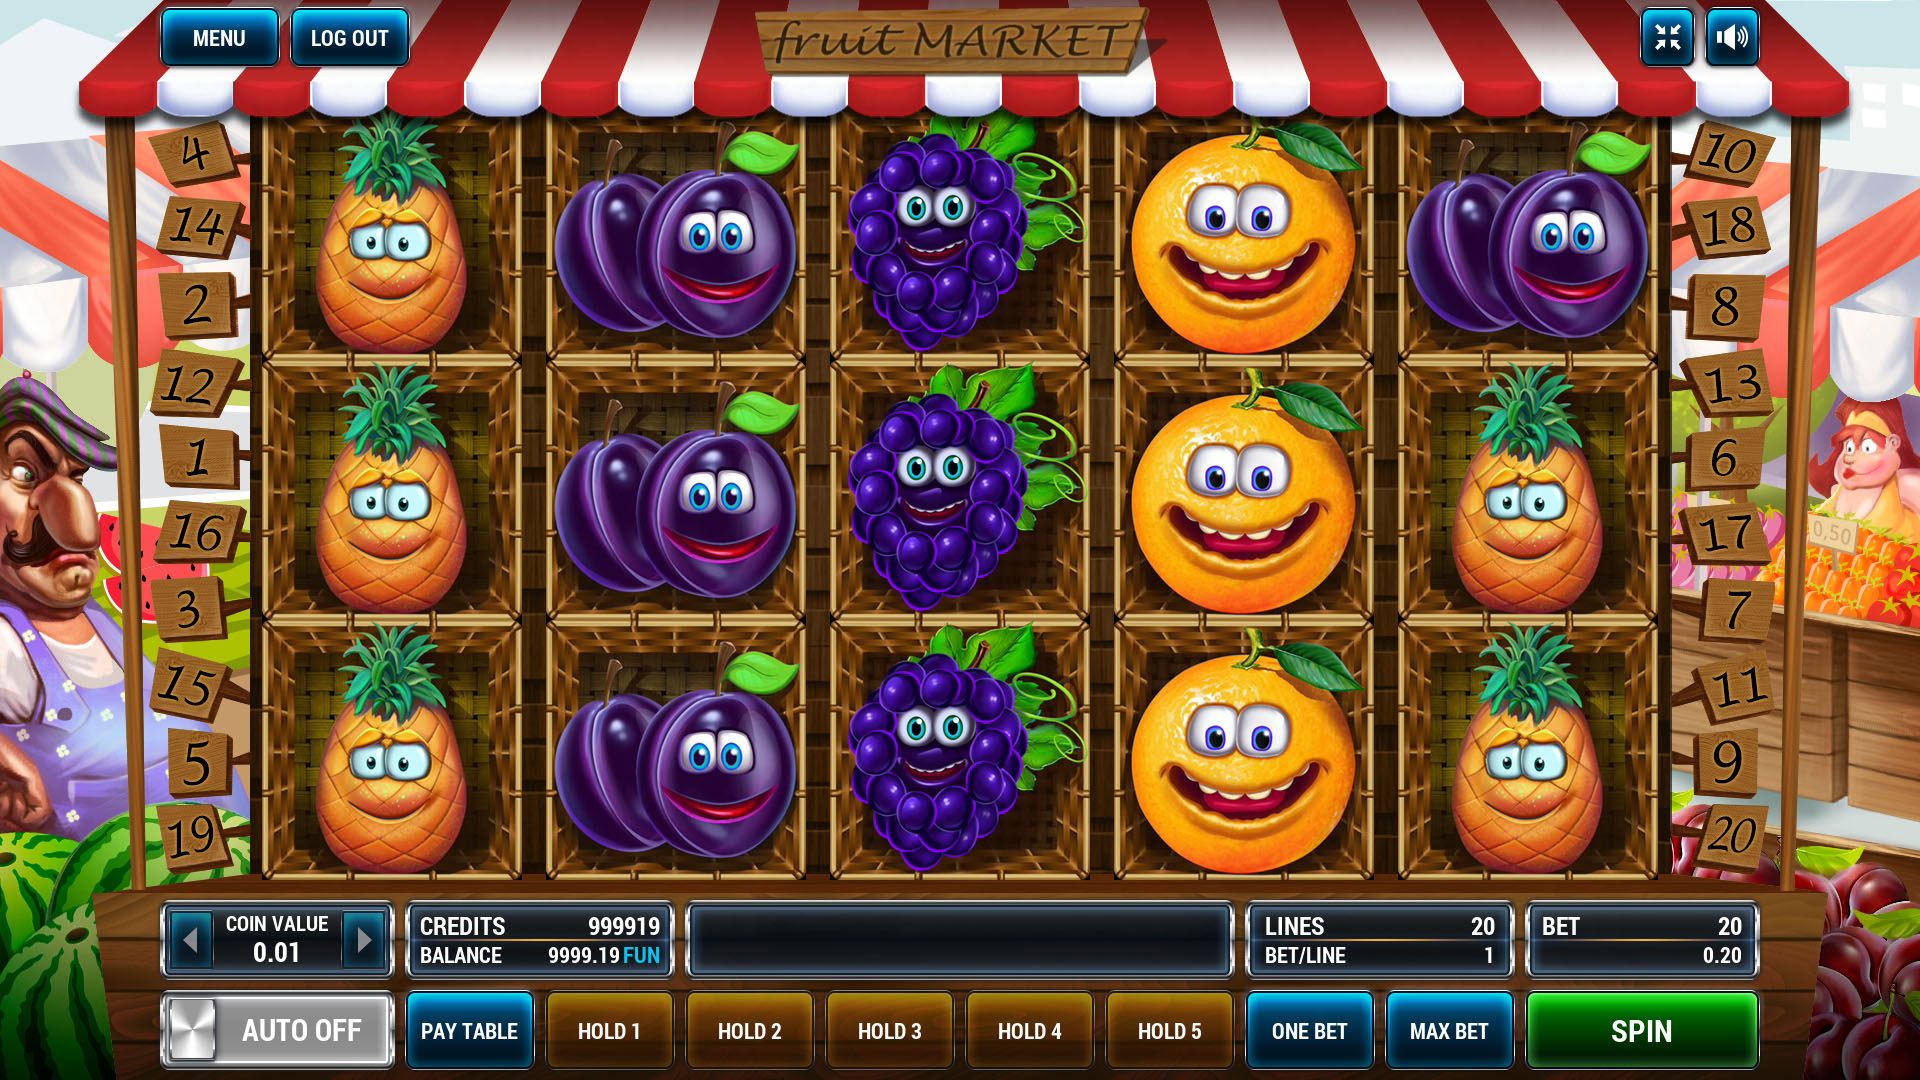 Fruit Market screenshot 2